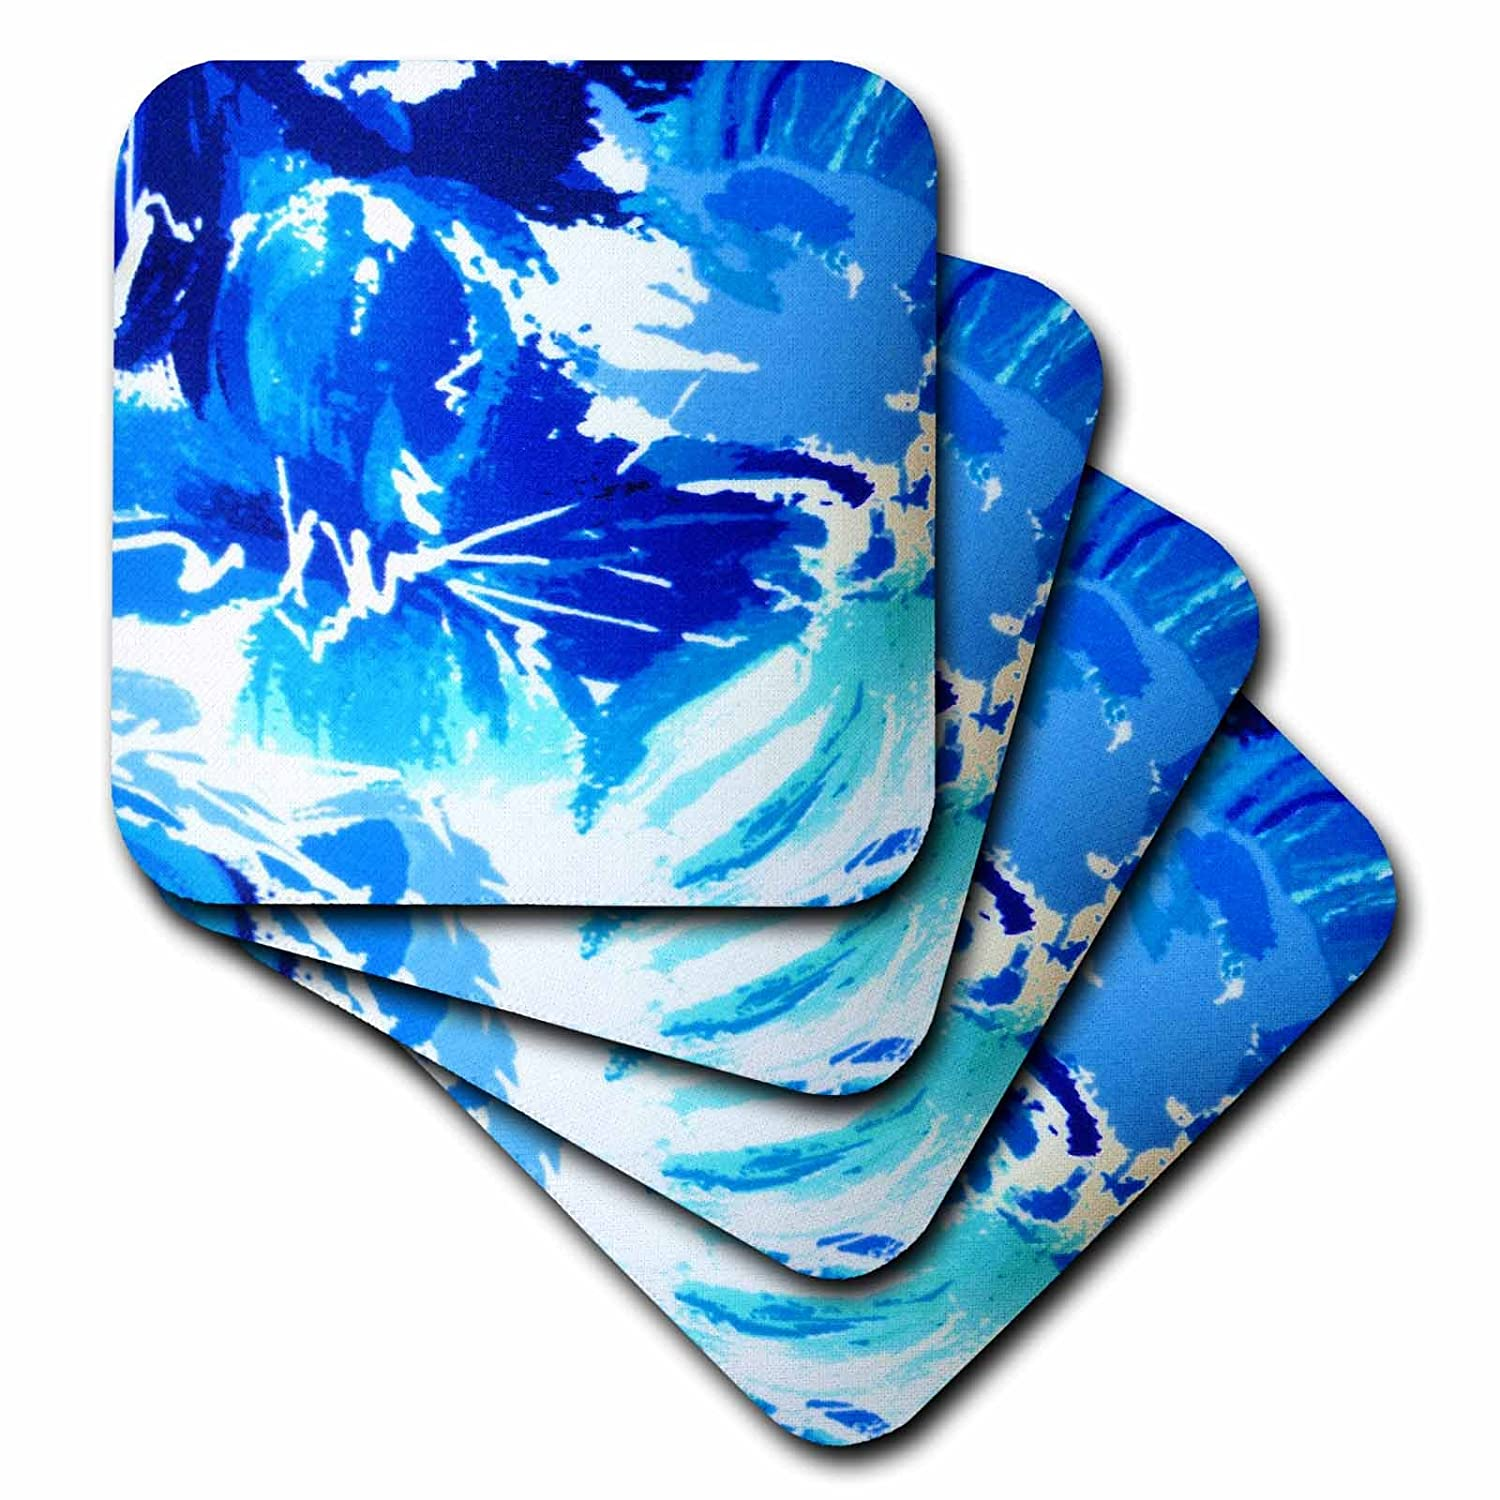 Set of 4 3dRose cst/_20301/_3 Blue Ice Ceramic Tile Coasters